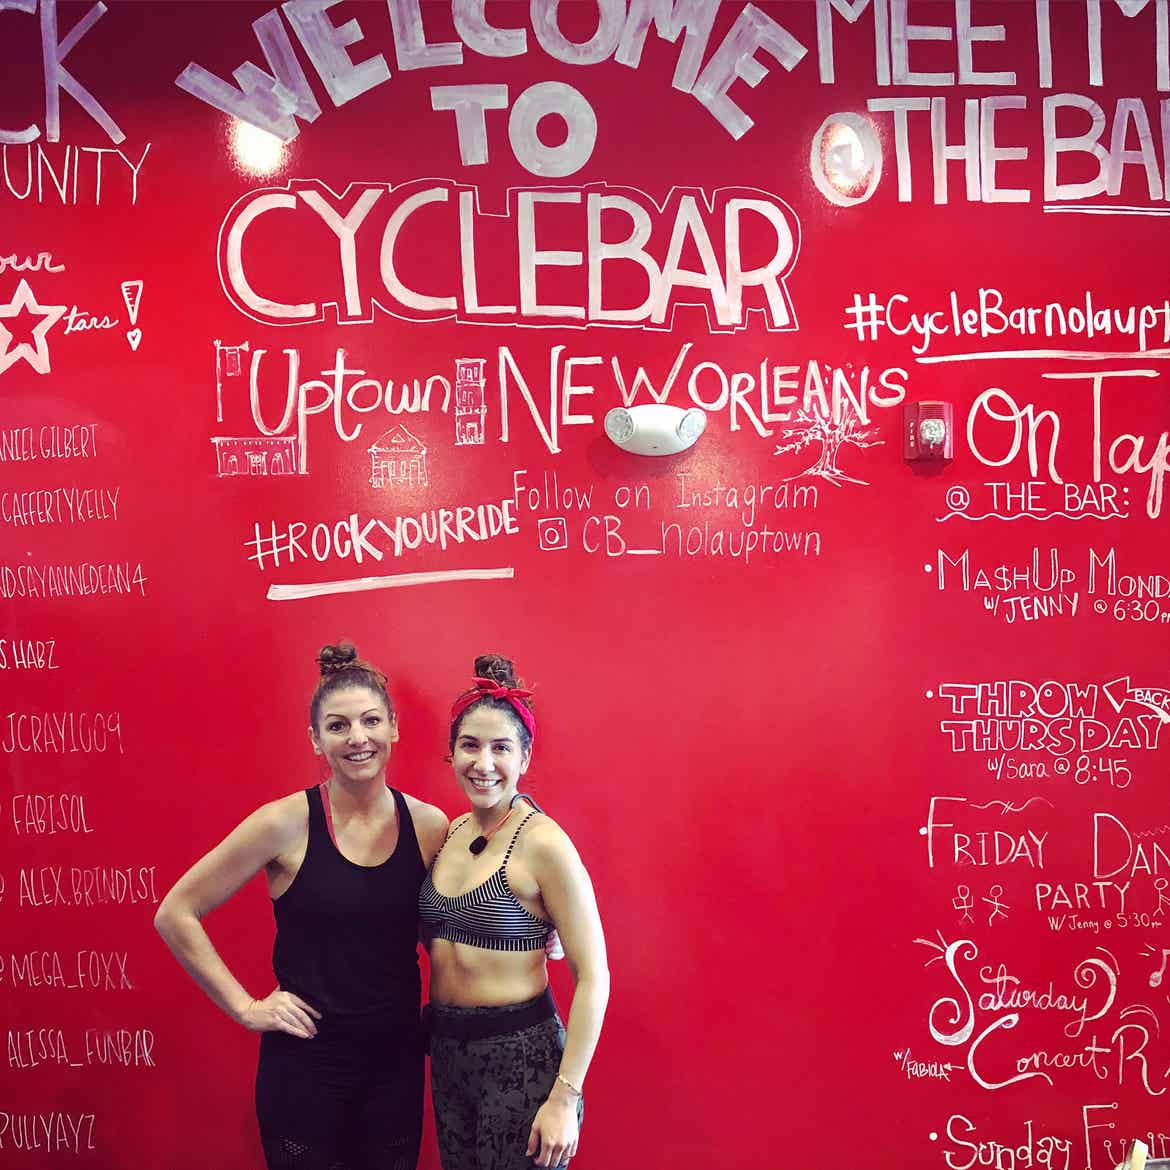 Co-author, Christine (left), wears a black tank top and shorts while posing with a fellow cycle bar instructor at New Orleans location.